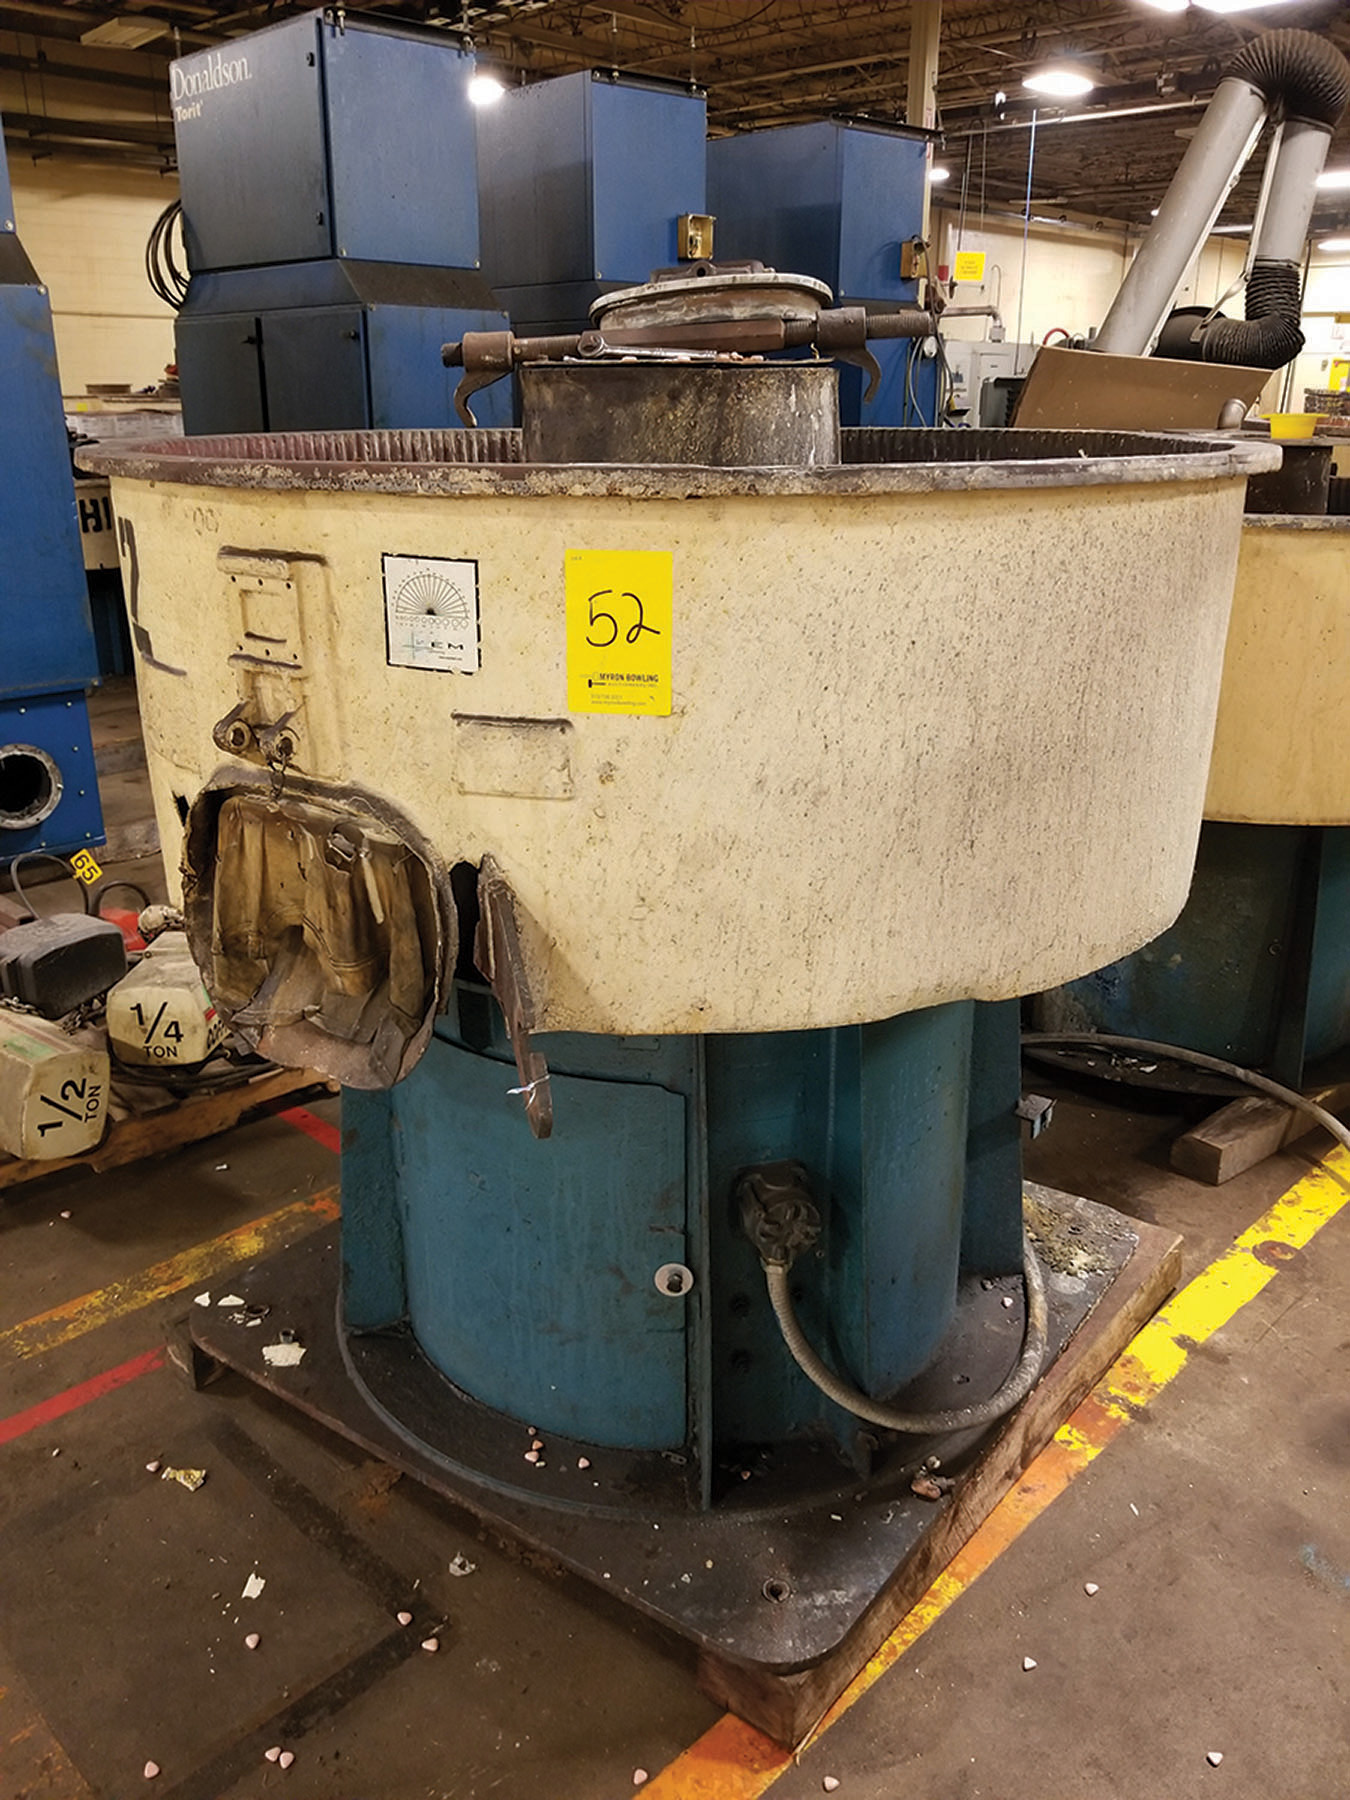 Lot 52 - ROSLER VIBRATORY BOWL FINISHER; 57'' DIA. X 16'' DEEP ***$50.00 RIGGING FEE***